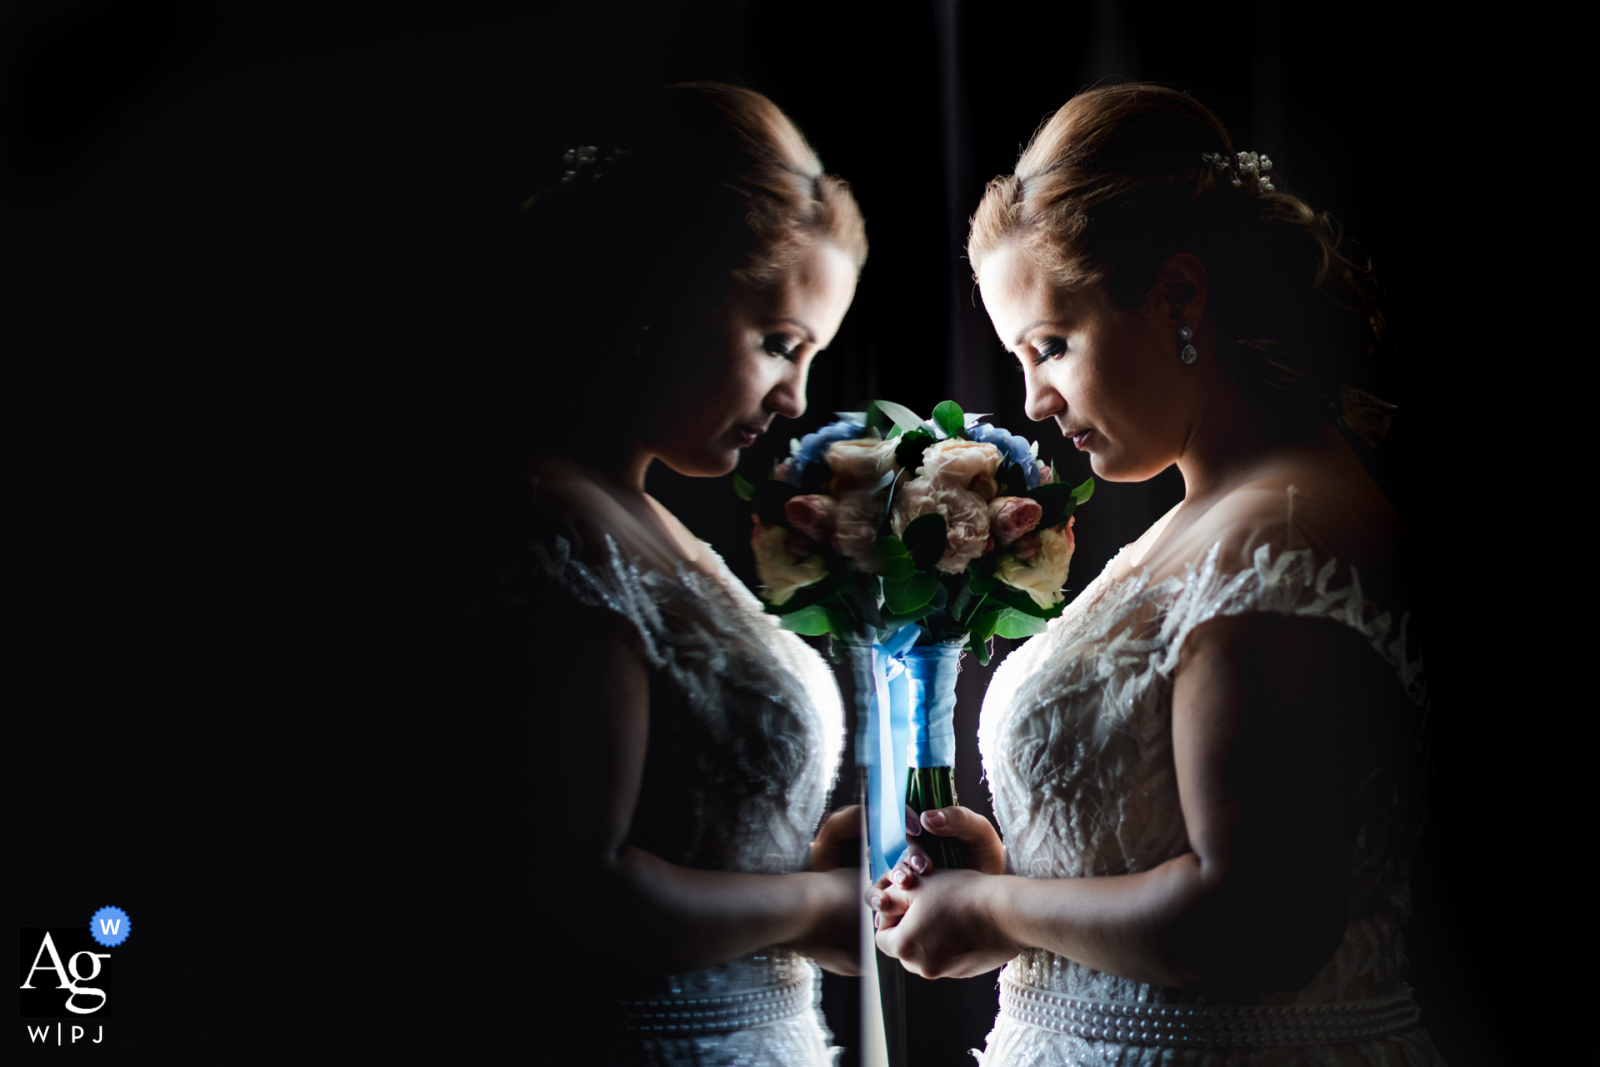 Best Western Inter Expo Hotel, Sofia portrait of the bride's reflection with her flowers